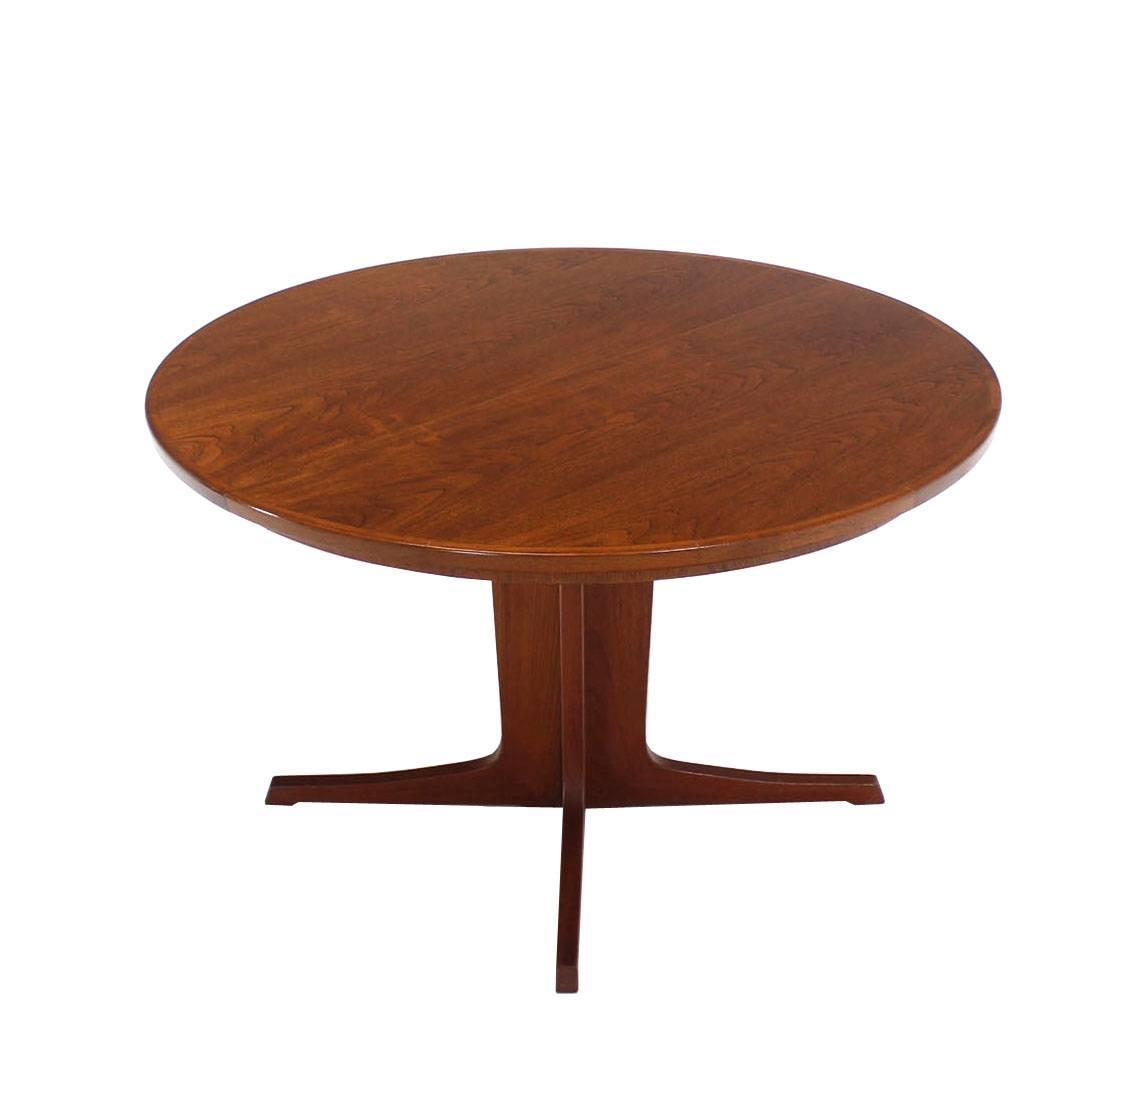 Round danish mid century modern teak dining table with two for Dining table with two leaves